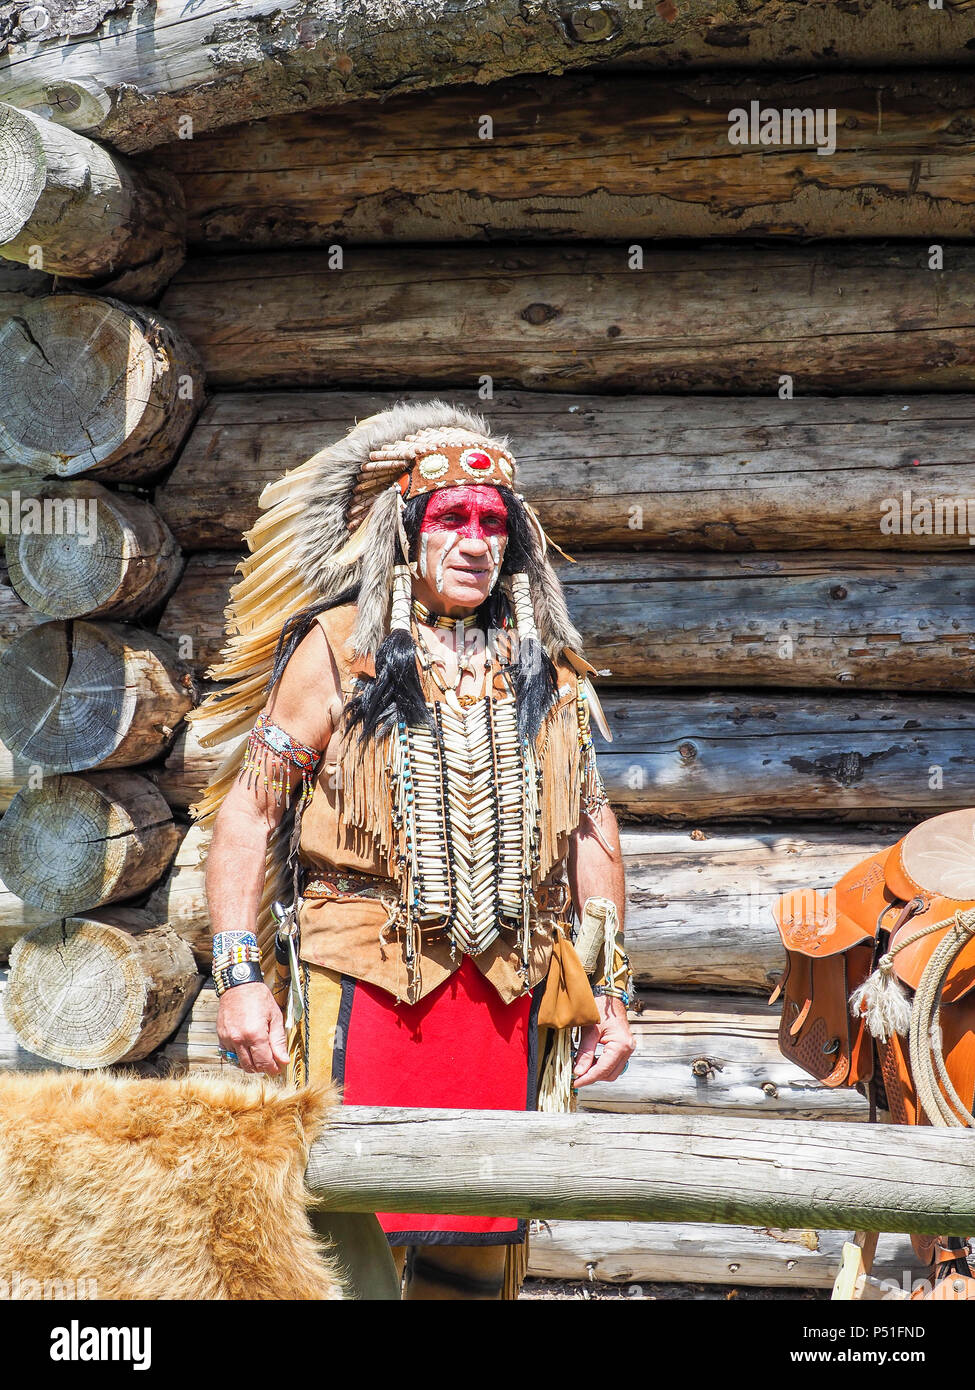 Documentary editorial image. ELBEUF, FRANCE - June 9, 2018. An unidentified man portrait in costume of American Indian. portrait outdoors. France - Stock Image